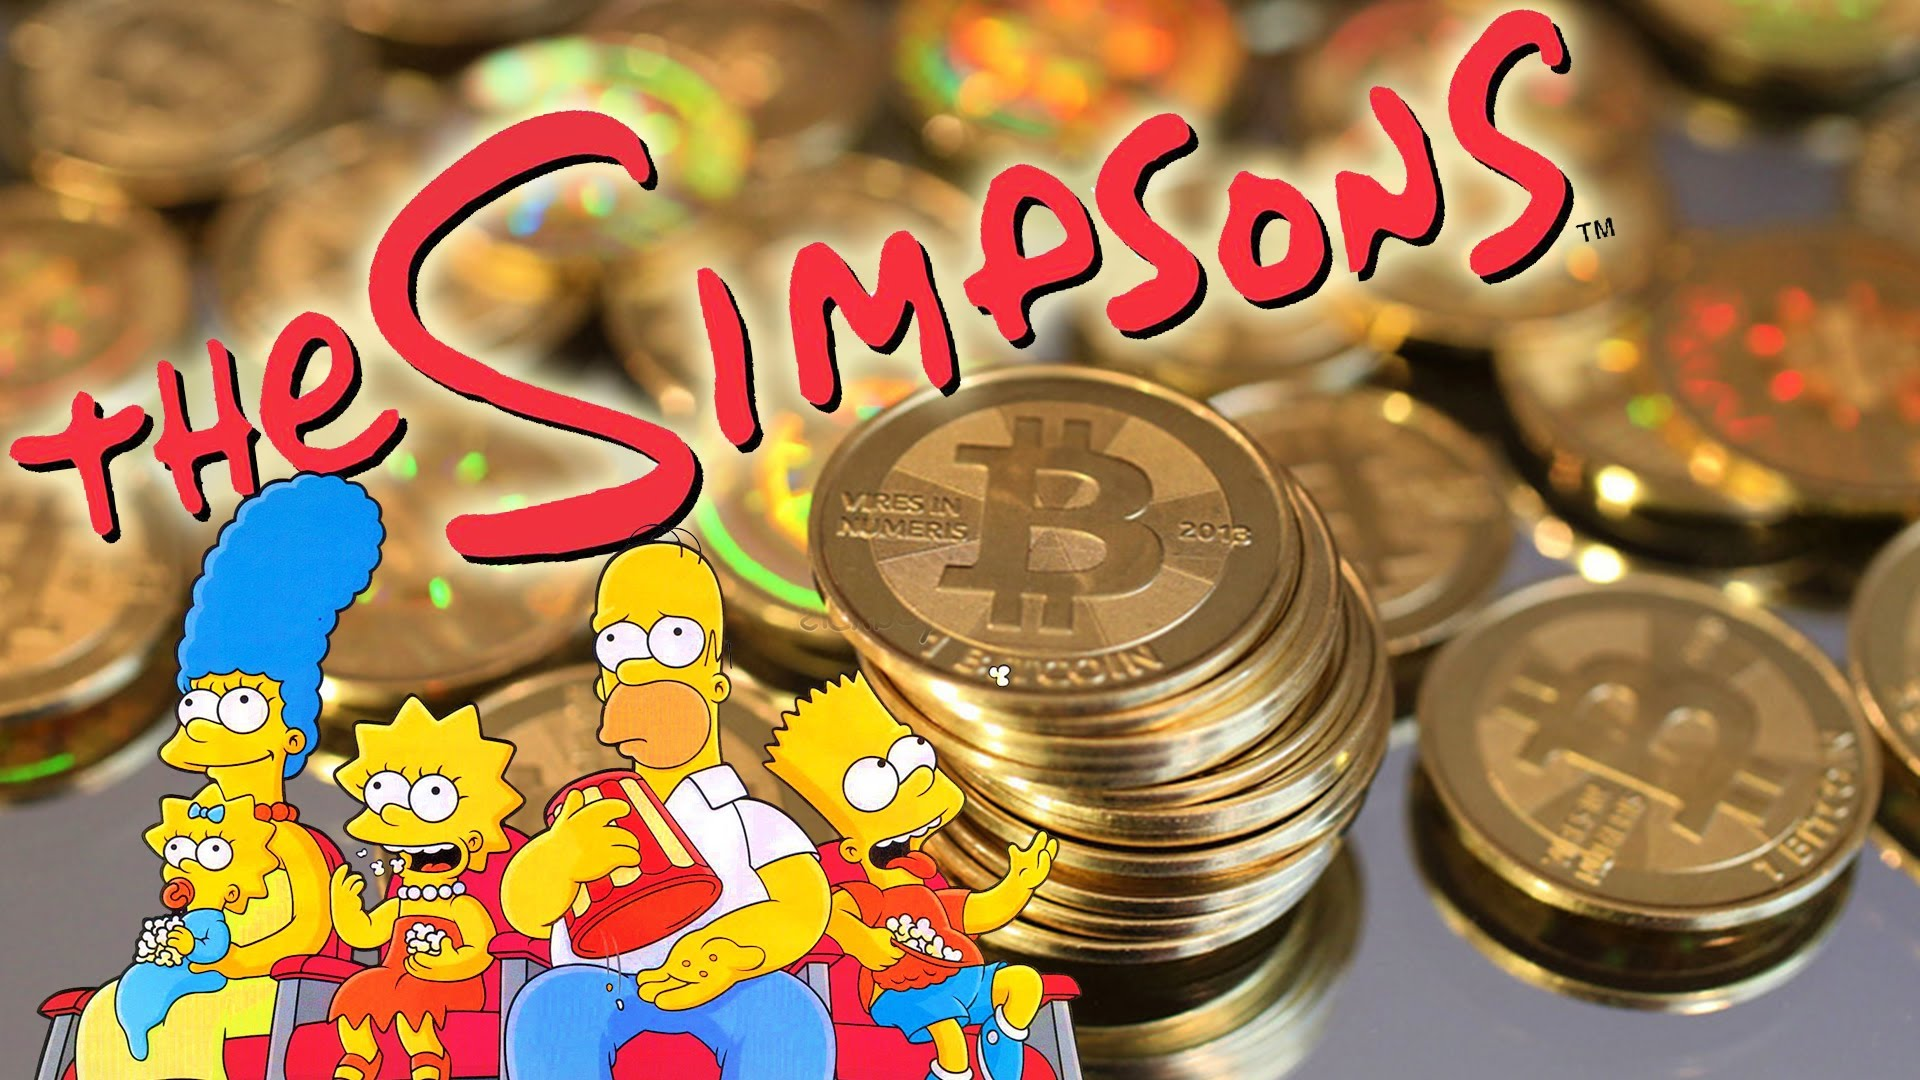 The Simpsons and Marvel's heroes use bitcoin